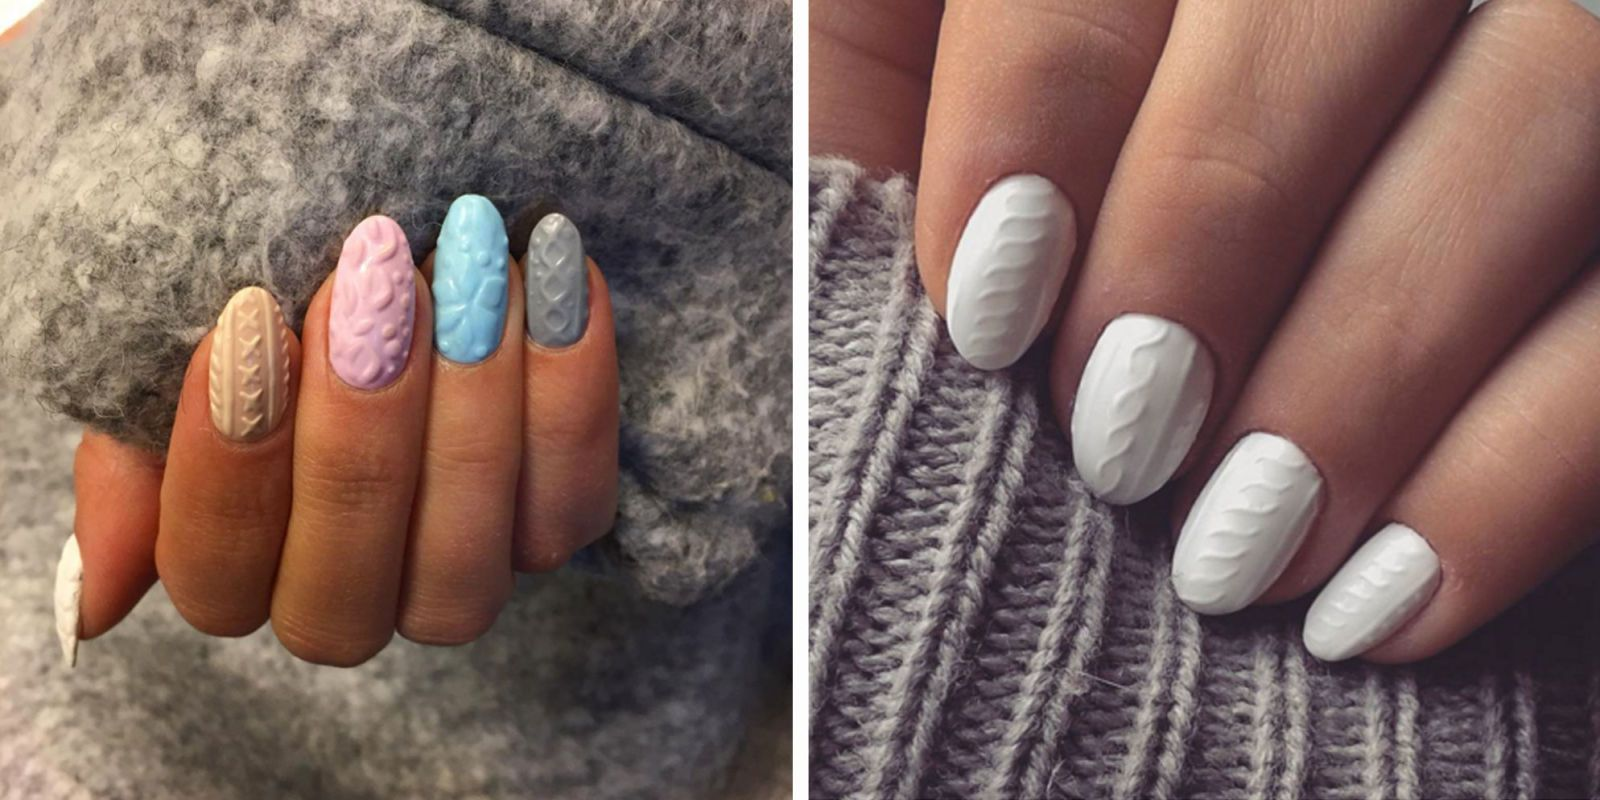 Cozy Knitted Nail Art Allows Your Nails To Bundle Up In A Sweater Too